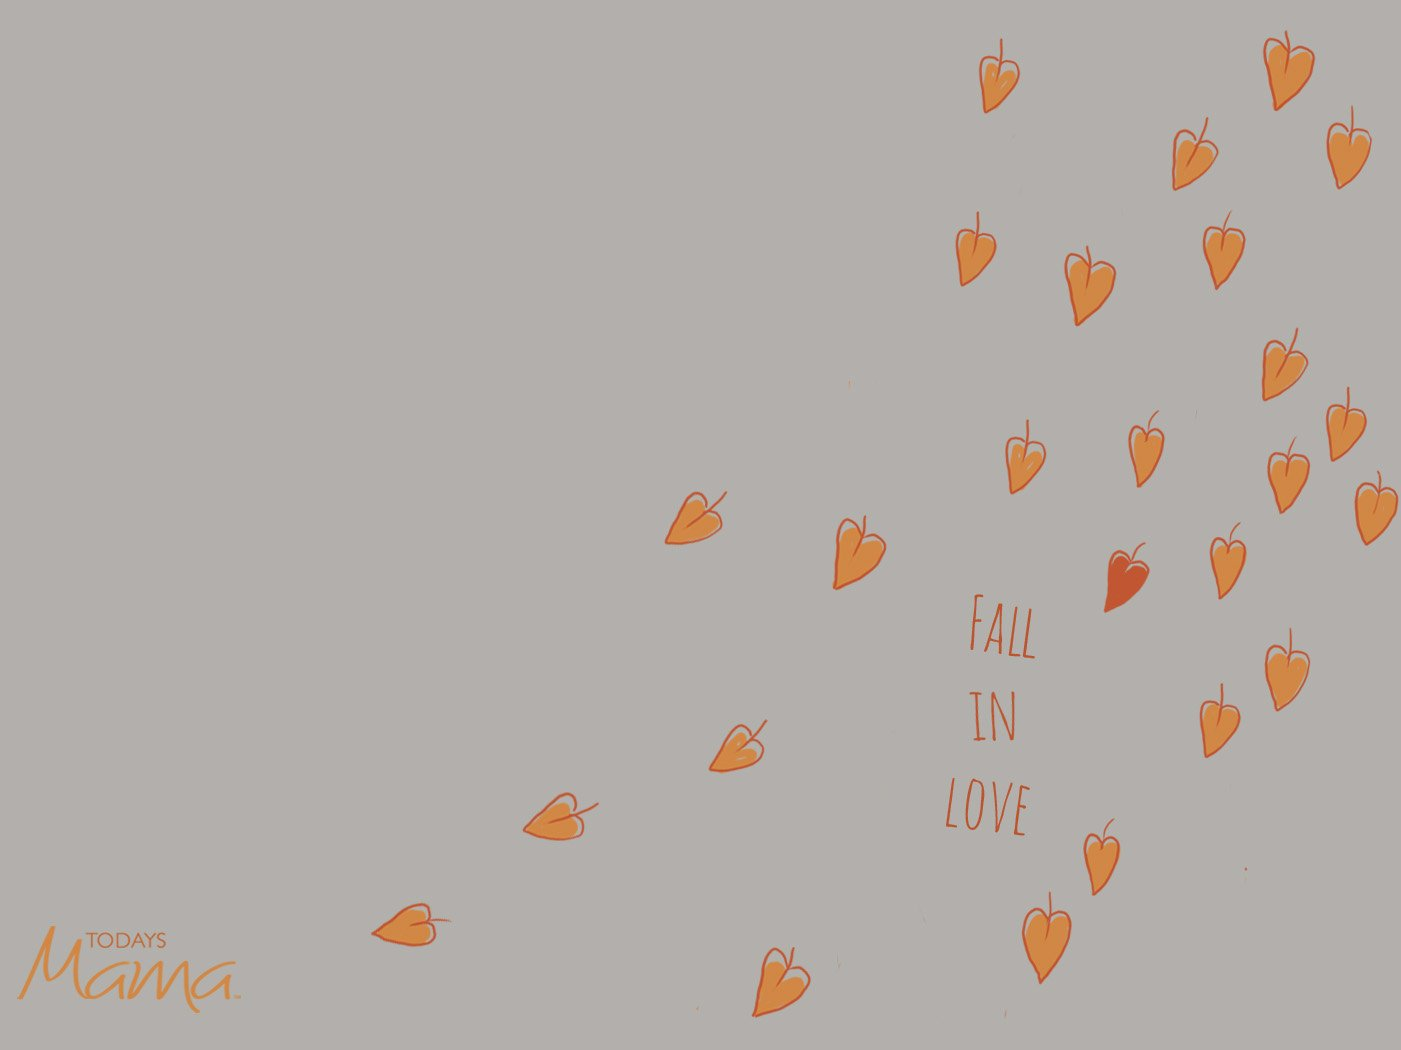 Free Download Cute Fall Backgrounds Cute Fall Desktop Wallpaper 1401x1050 For Your Desktop Mobile Tablet Explore 46 Cute Fall Wallpaper Backgrounds Fall Wallpaper Backgrounds Cute Wallpapers For Your Phone